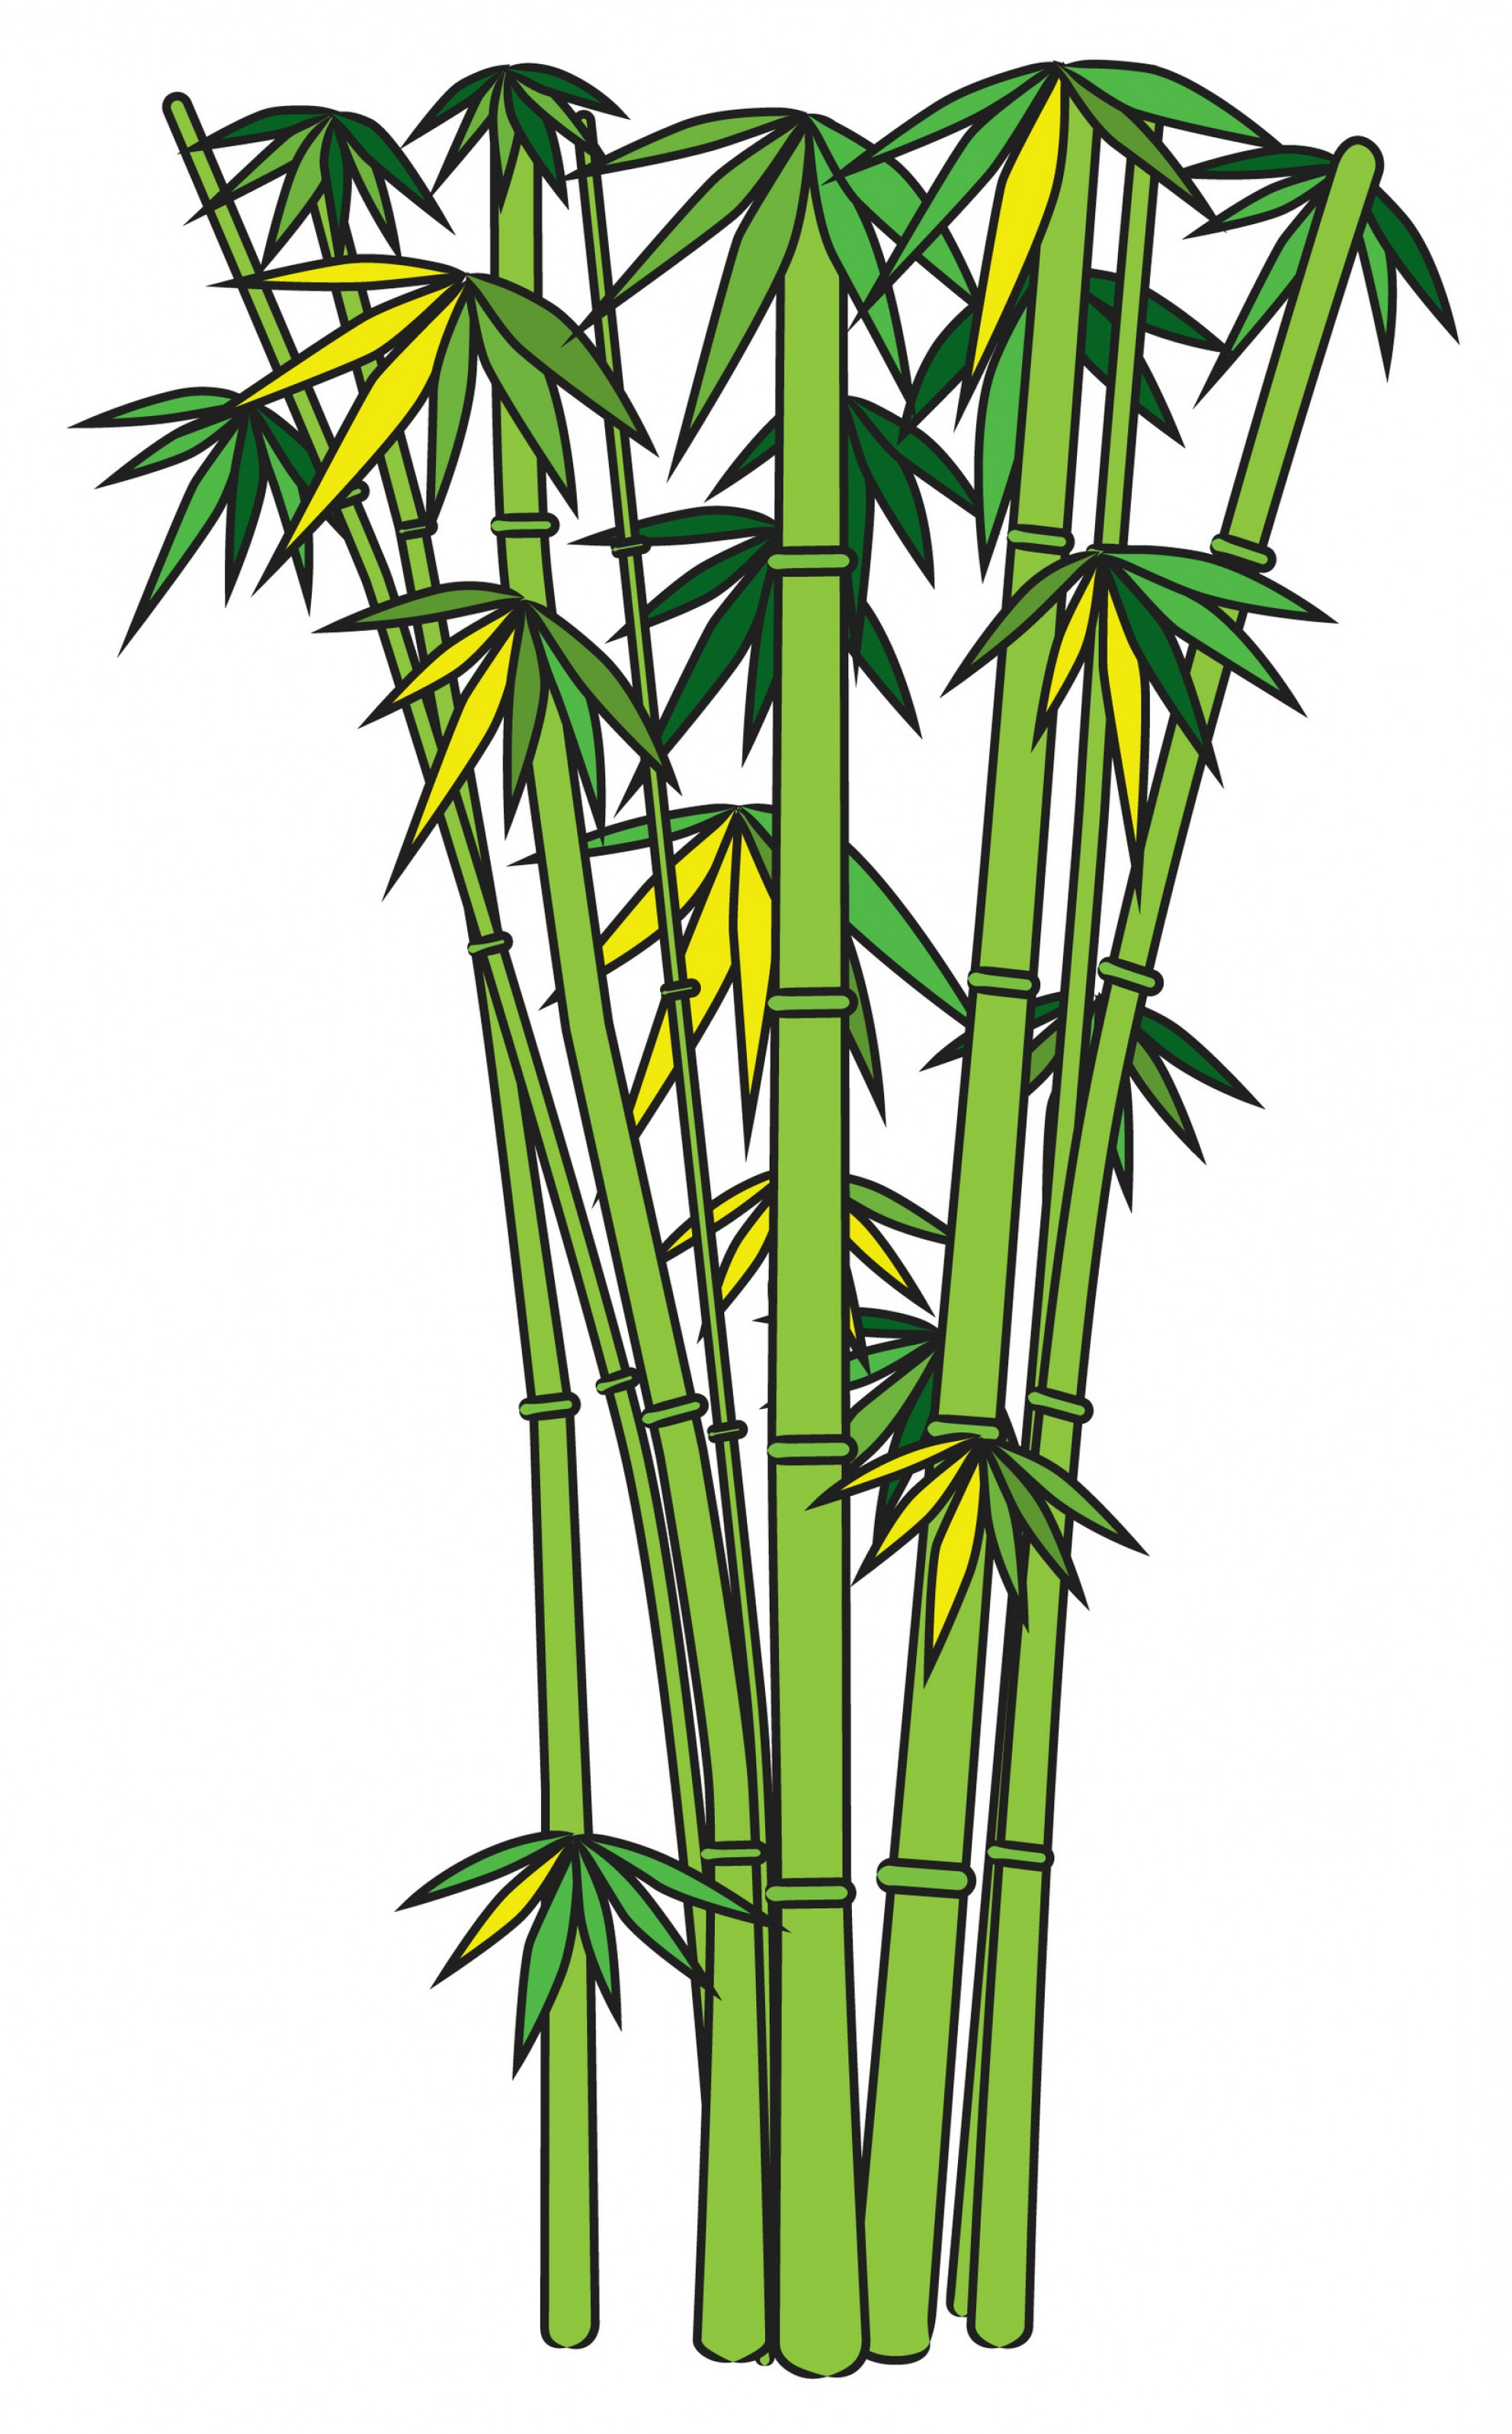 Clipart bamboo trees picture library download Bamboo Clipart | Free download best Bamboo Clipart on ClipArtMag.com picture library download